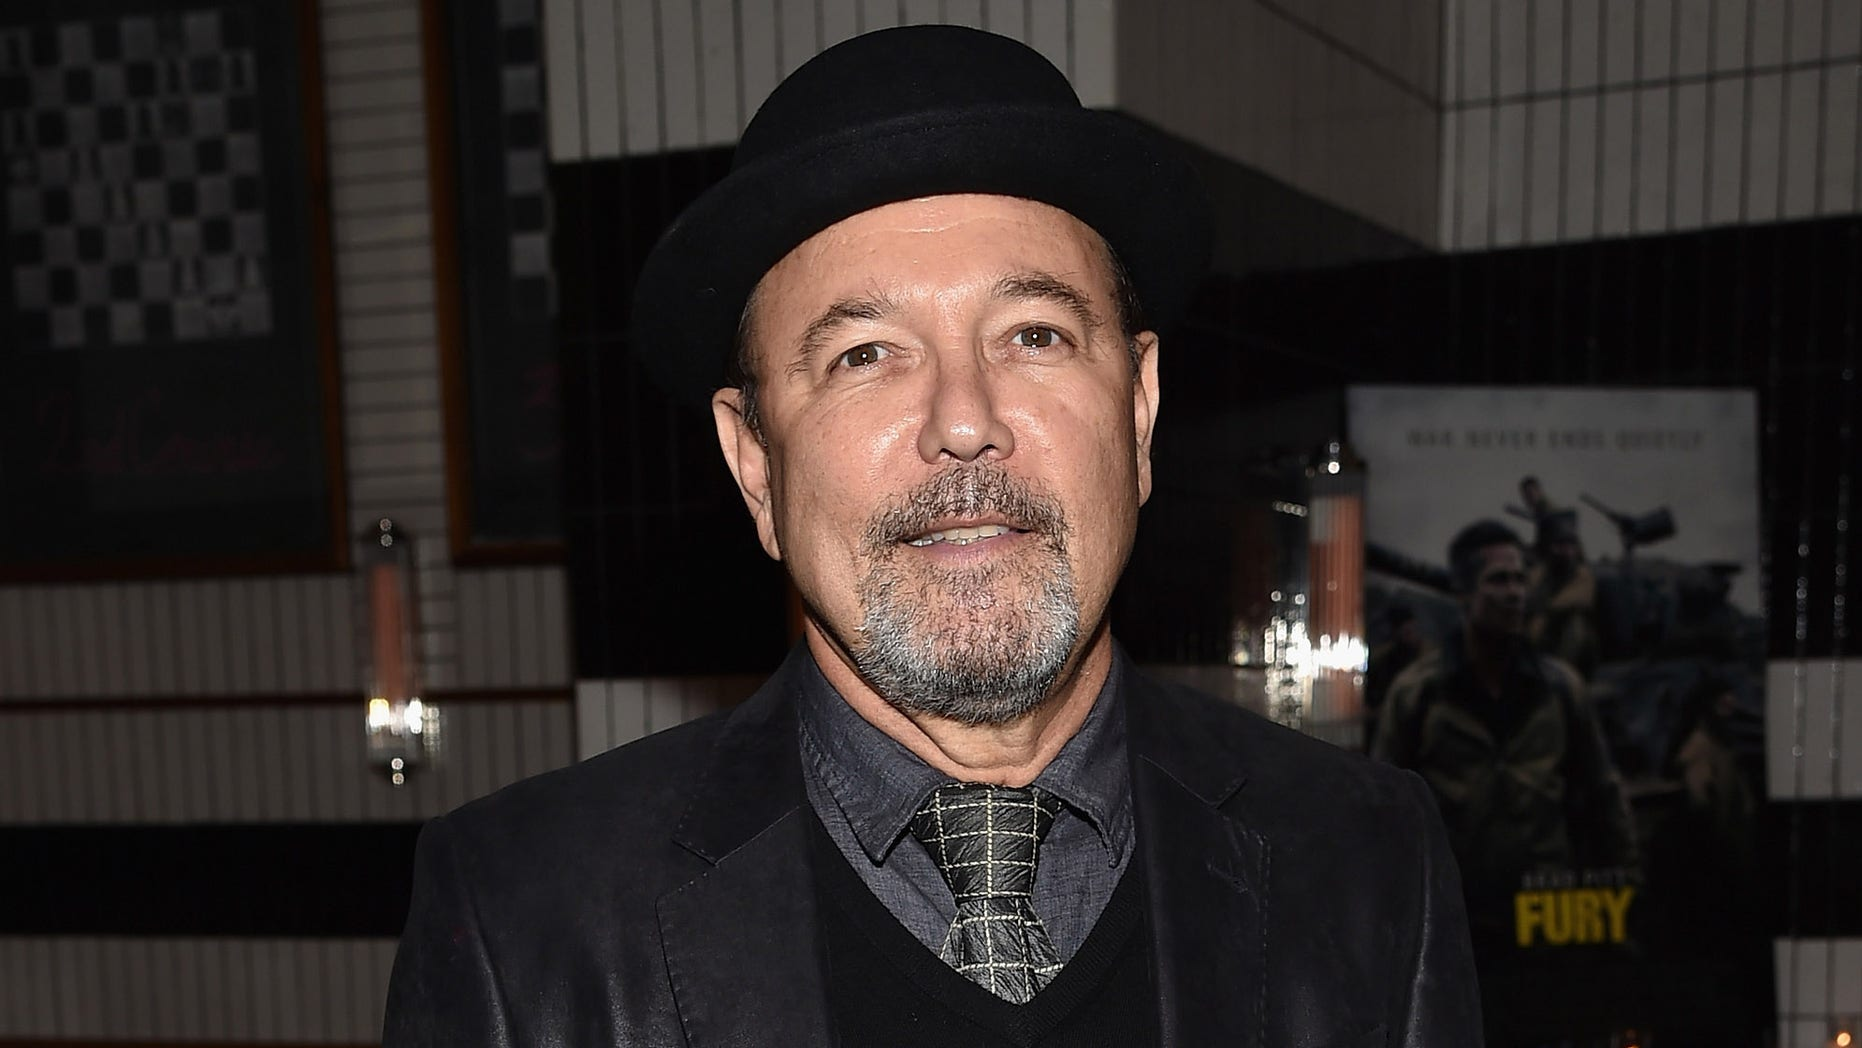 """NEW YORK, NY - OCTOBER 14:  Musician Ruben Blades attends the """"Fury"""" New York premiere at DGA Theater on October 14, 2014 in New York City.  (Photo by Mike Coppola/Getty Images)"""